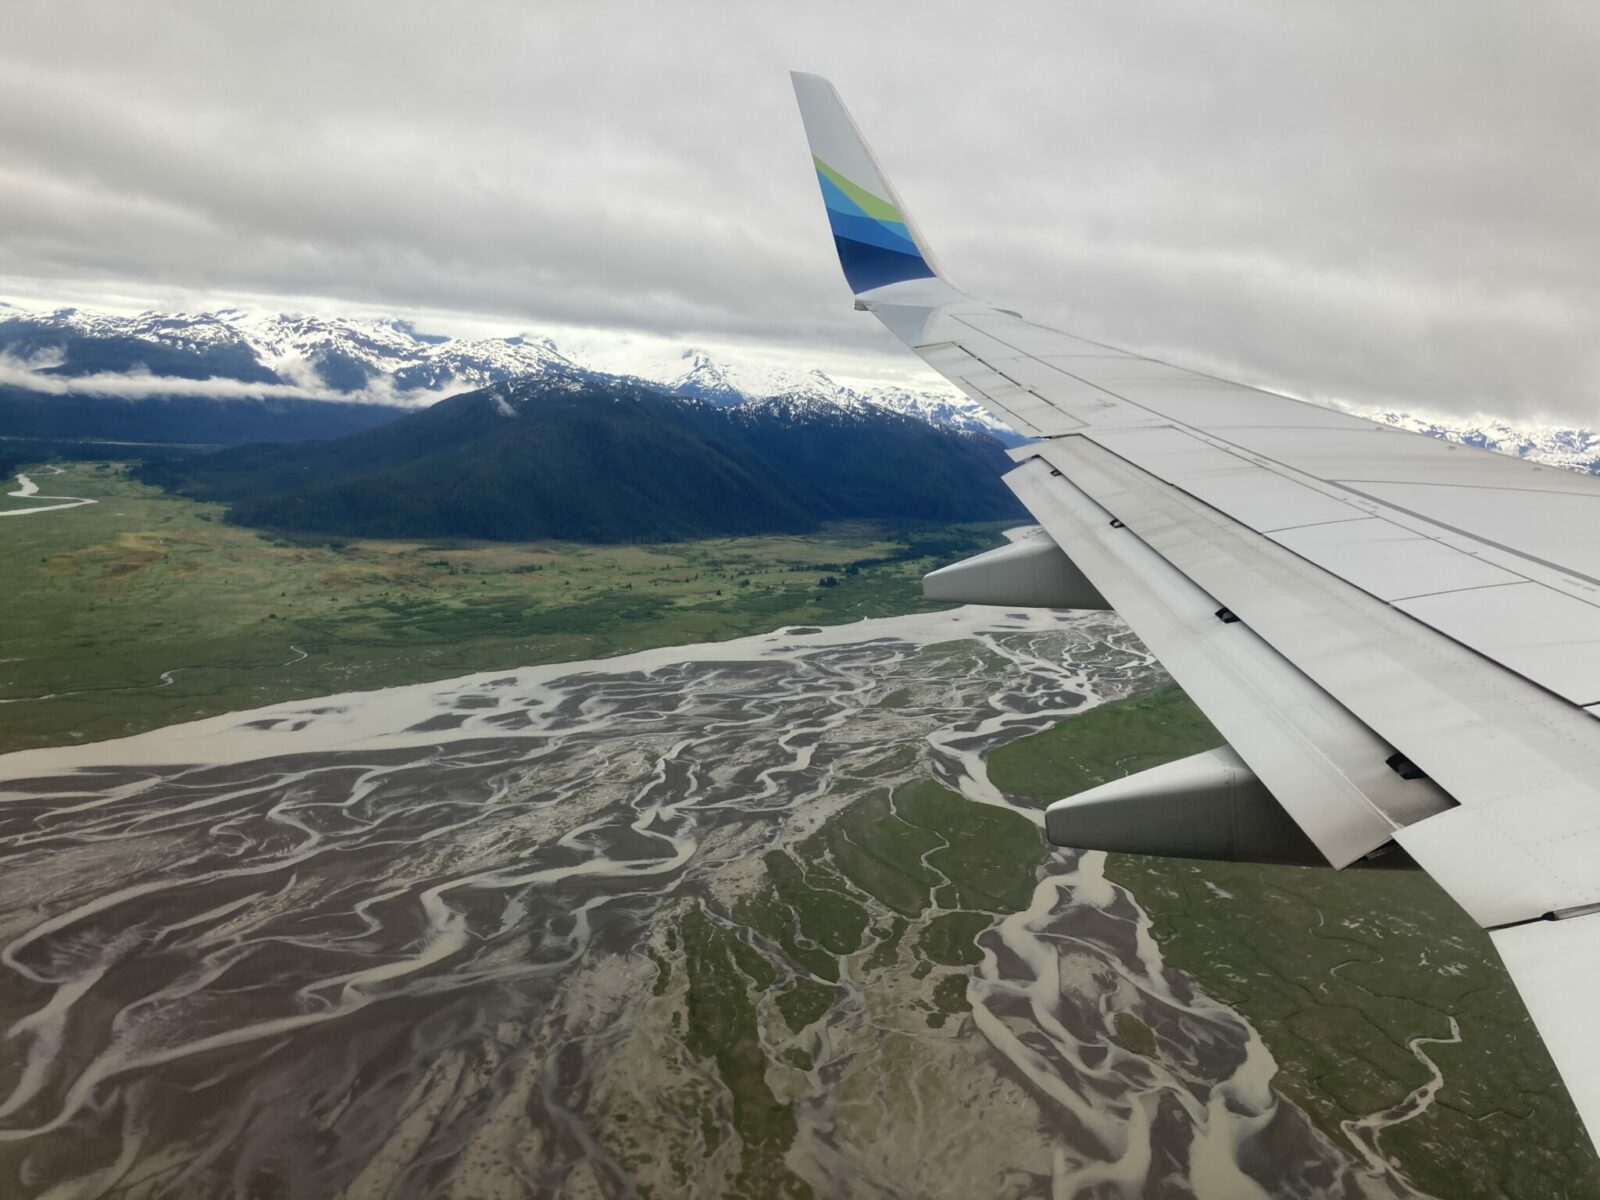 An airplane wing landing in Wrangell Alaska. Below the wing is the sprawling delta of a river surrounded by mountains